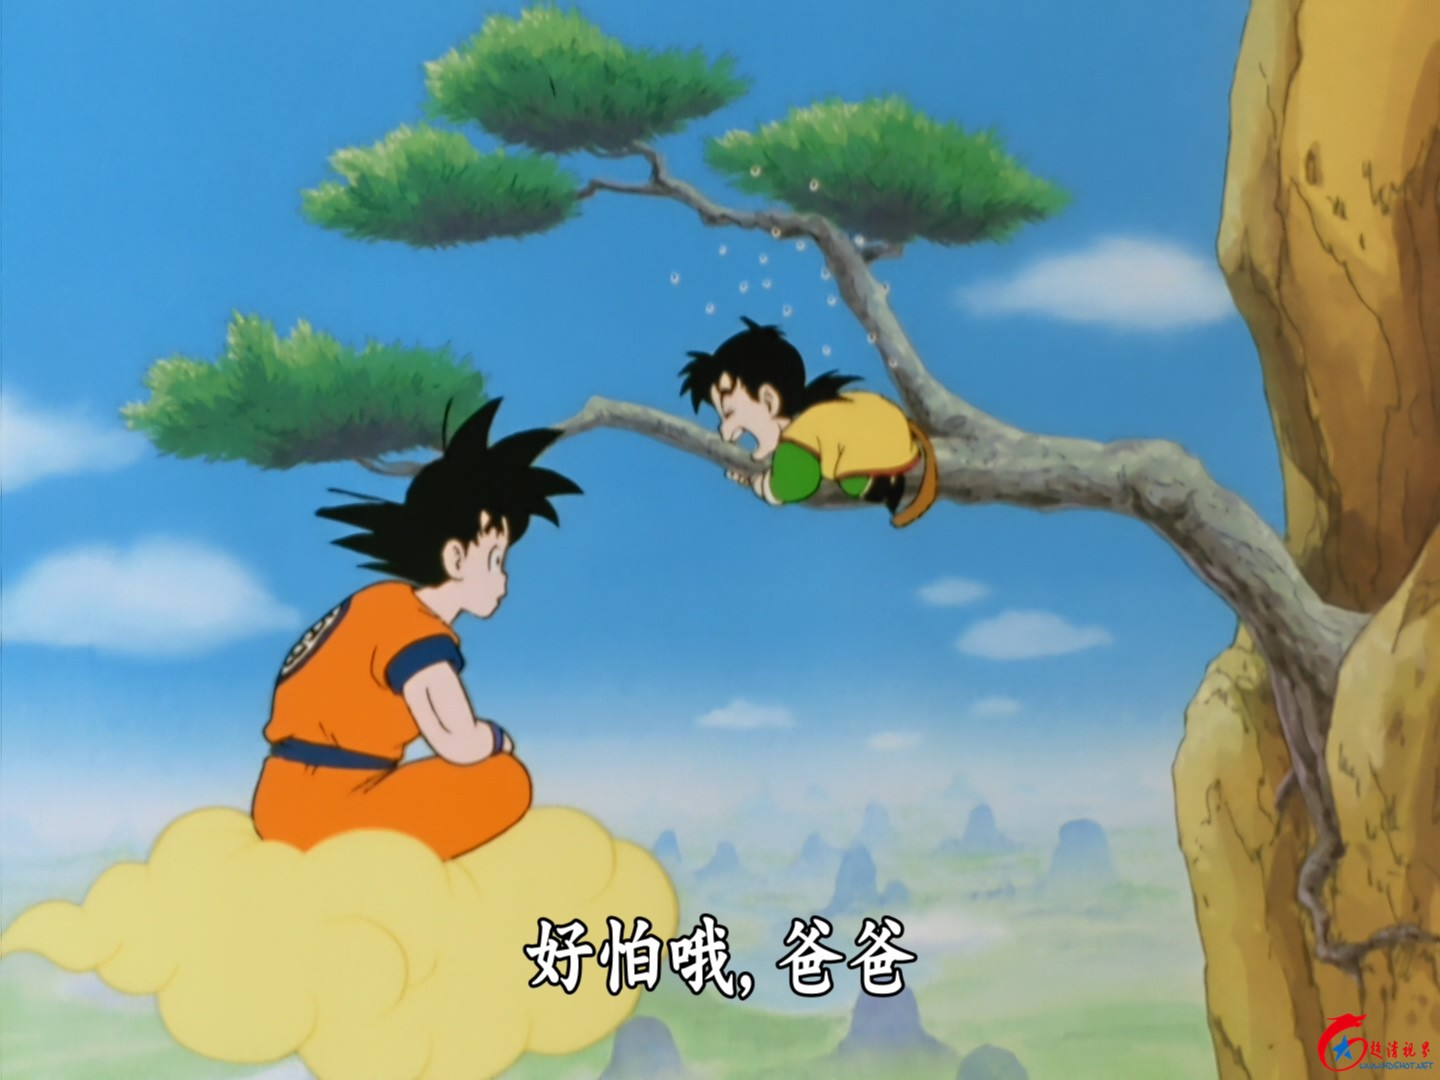 [超清视界论坛www.hdshot.net]龙珠改.Dragon Ball Kai.EP01.2009.BDRip.1080p.x265.2A.jpg